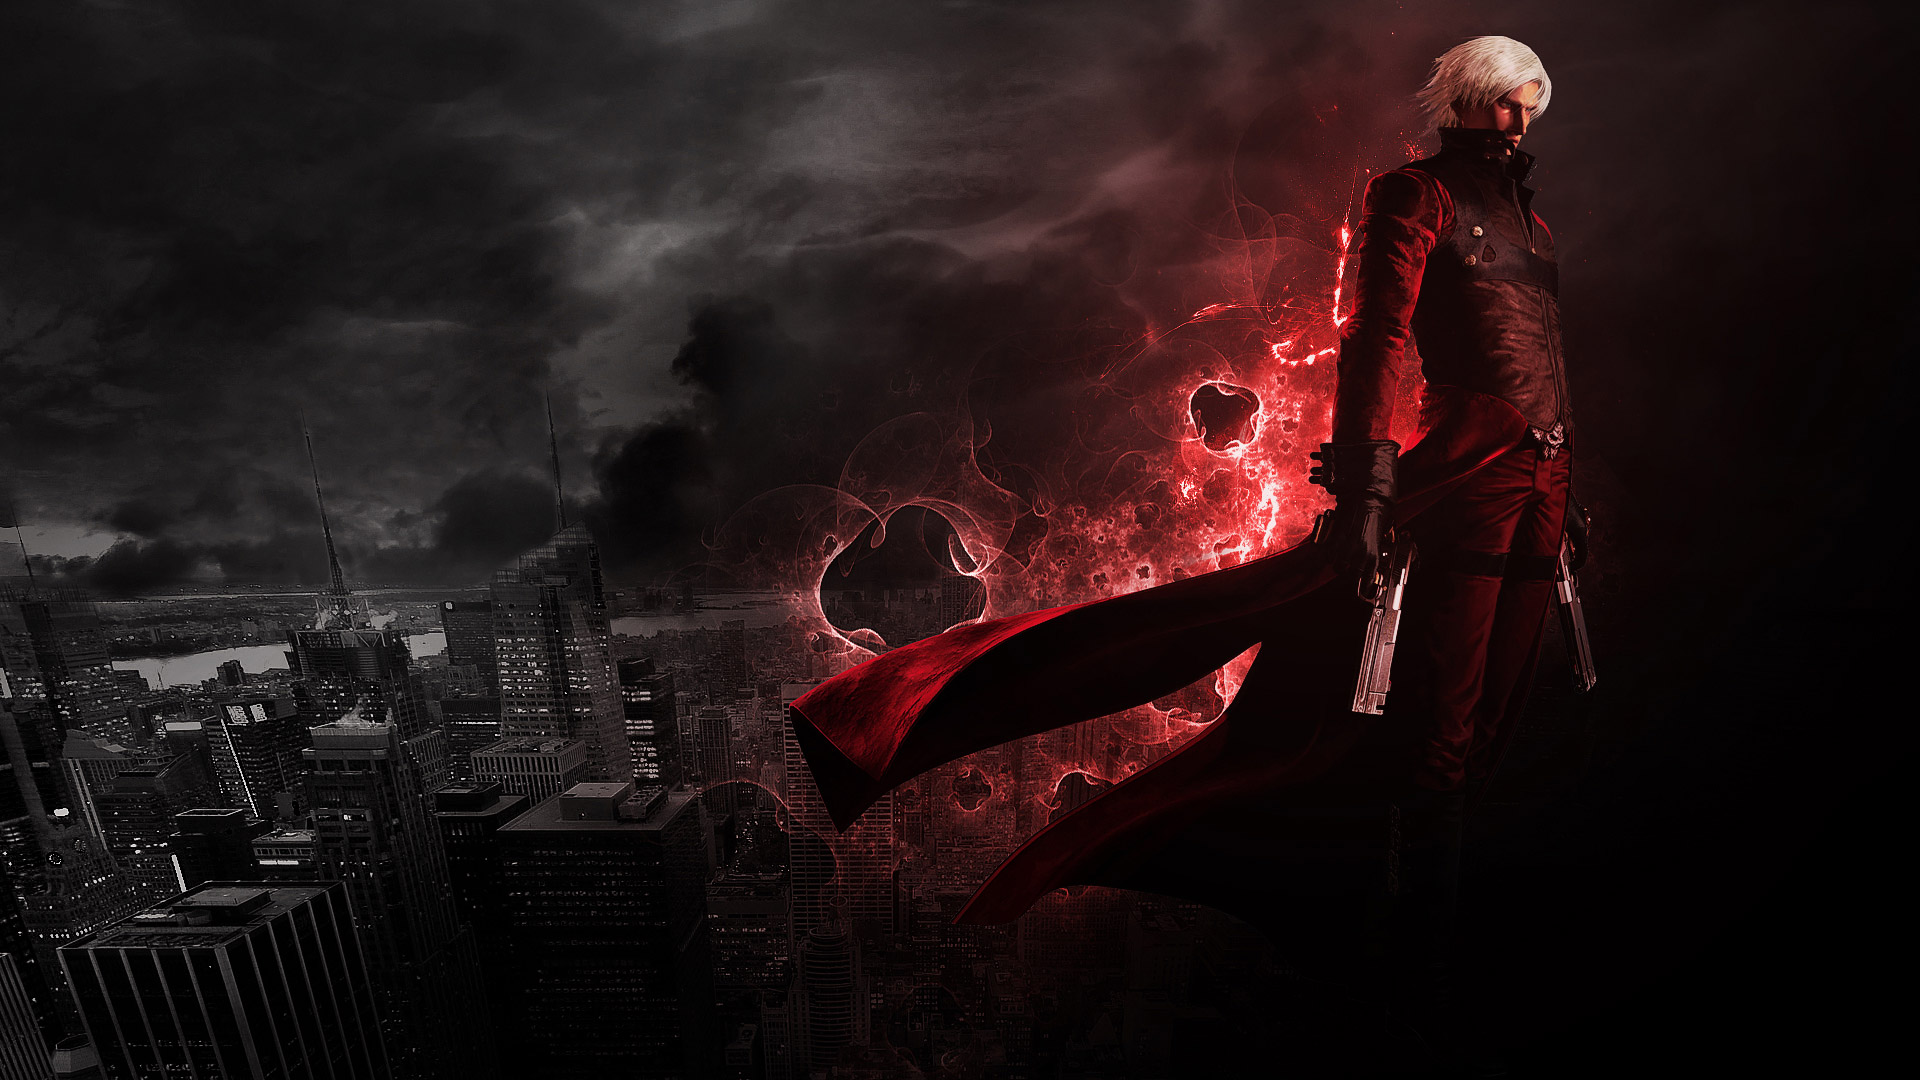 Devil May Cry 3 Wallpaper in 1920x1080